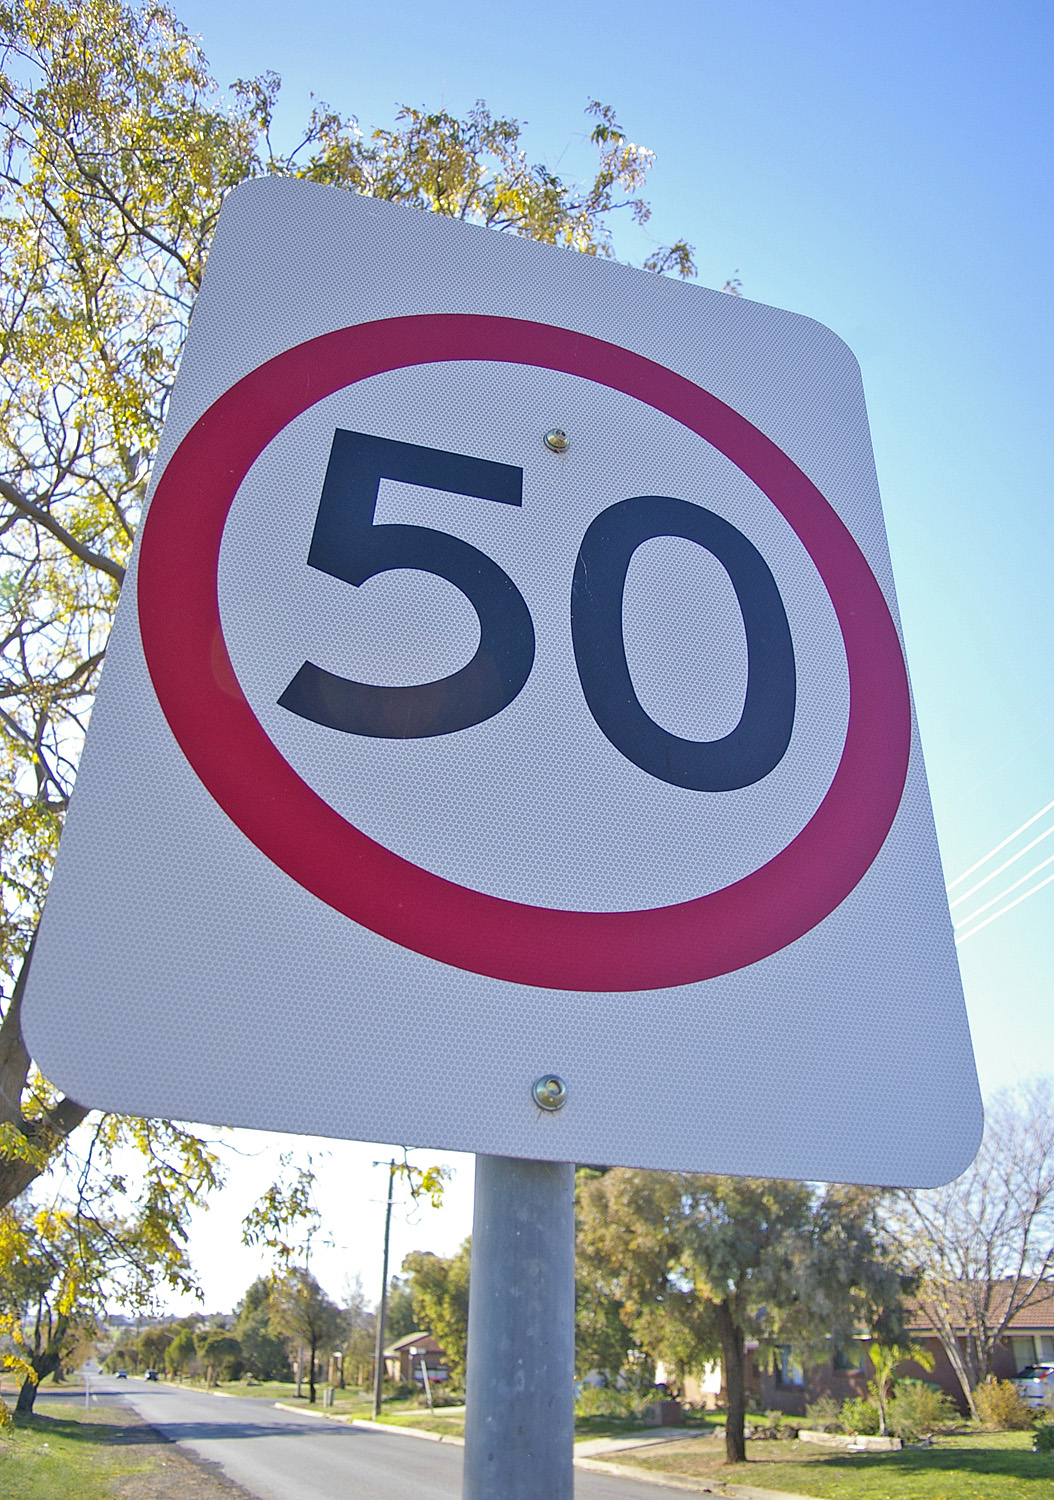 Speed limits in Australia - Wikipedia